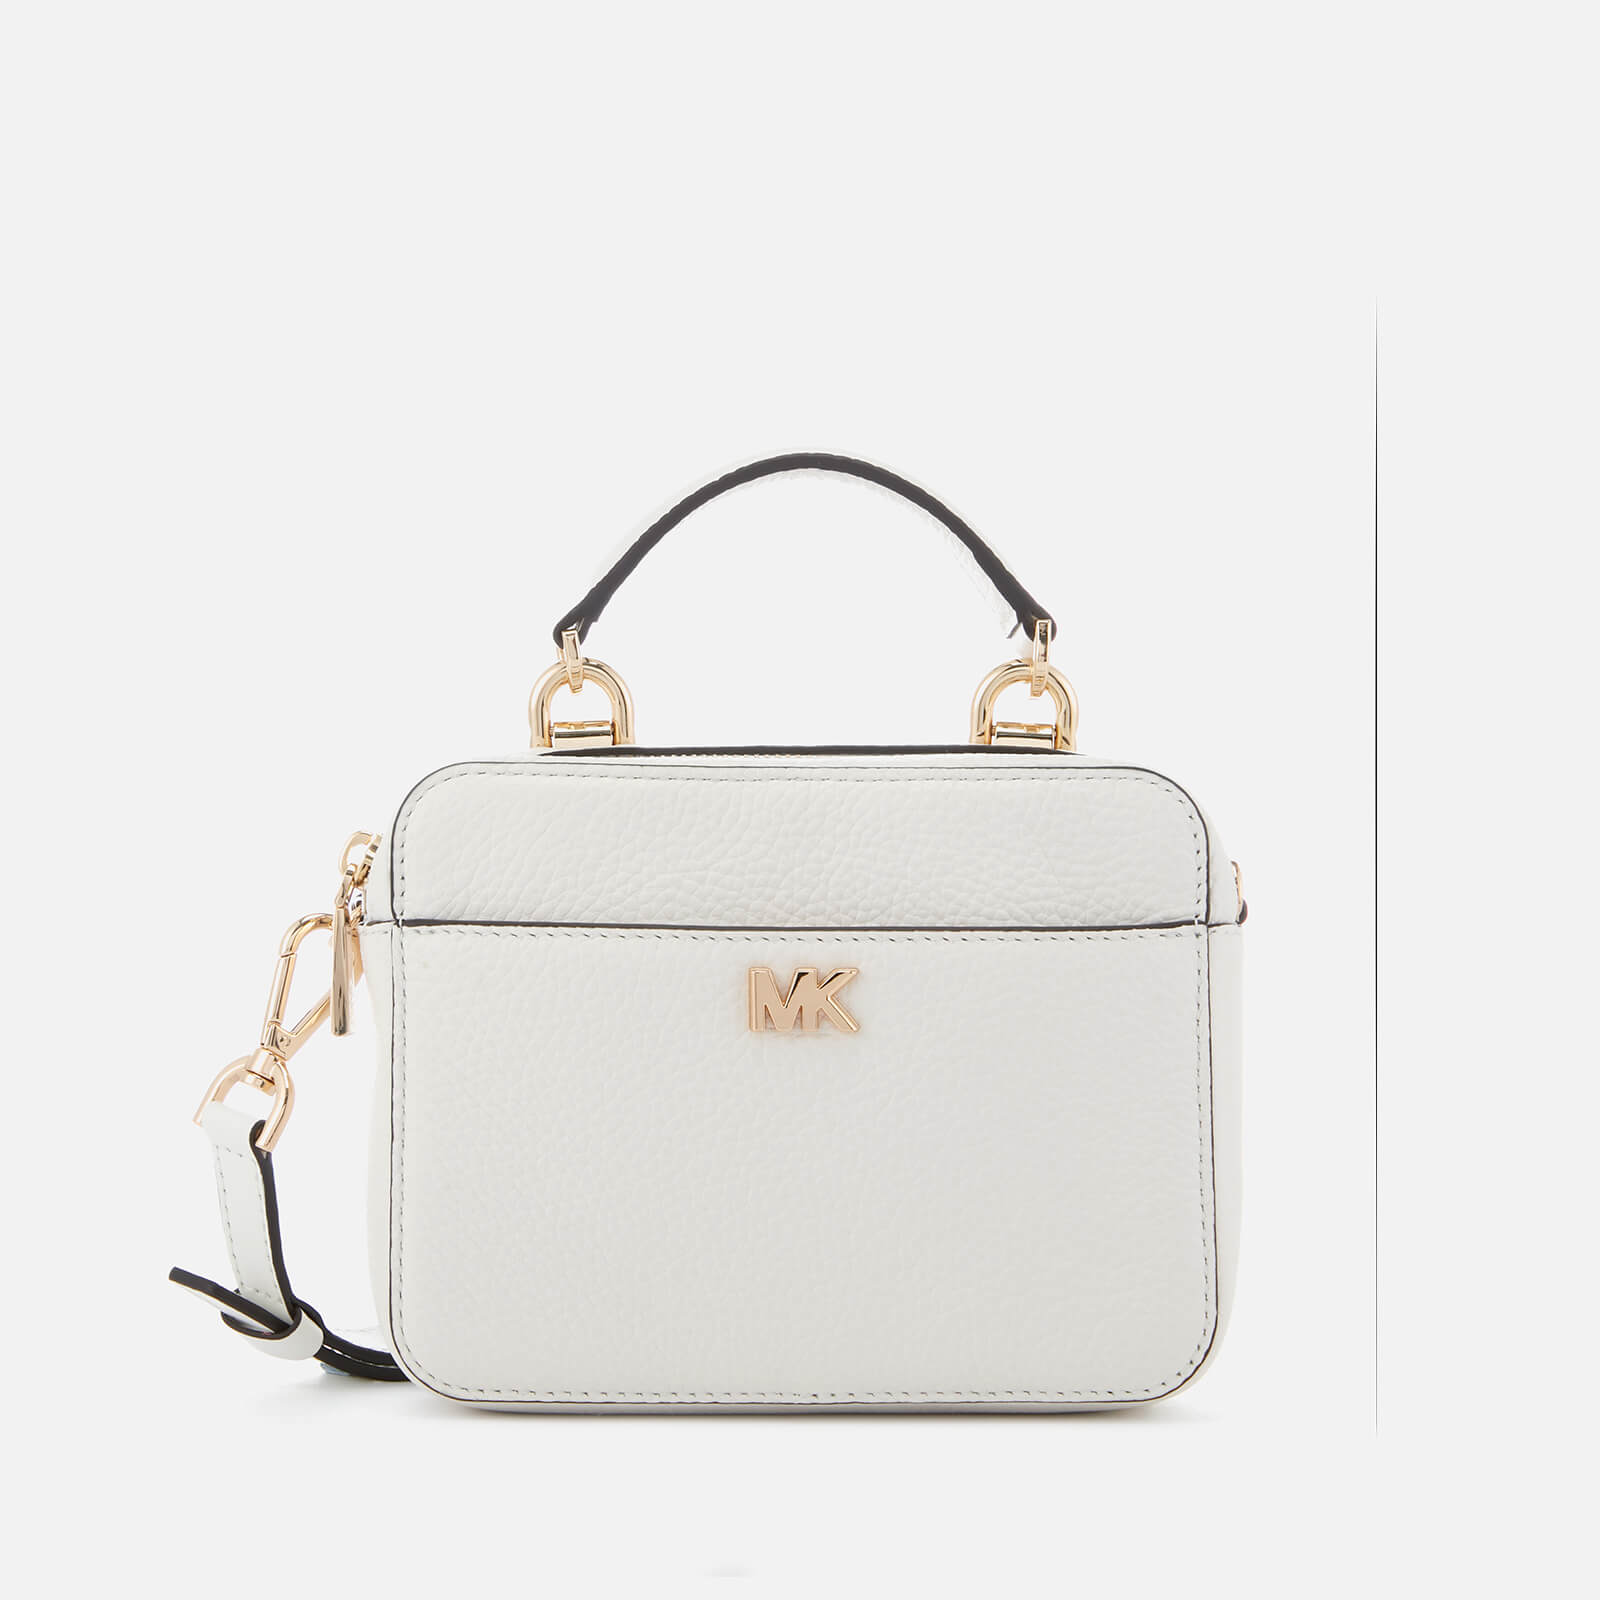 a46d31bf0148 MICHAEL MICHAEL KORS Women's Mini Guitar Strap Cross Body Bag - Optic White  - Free UK Delivery over £50